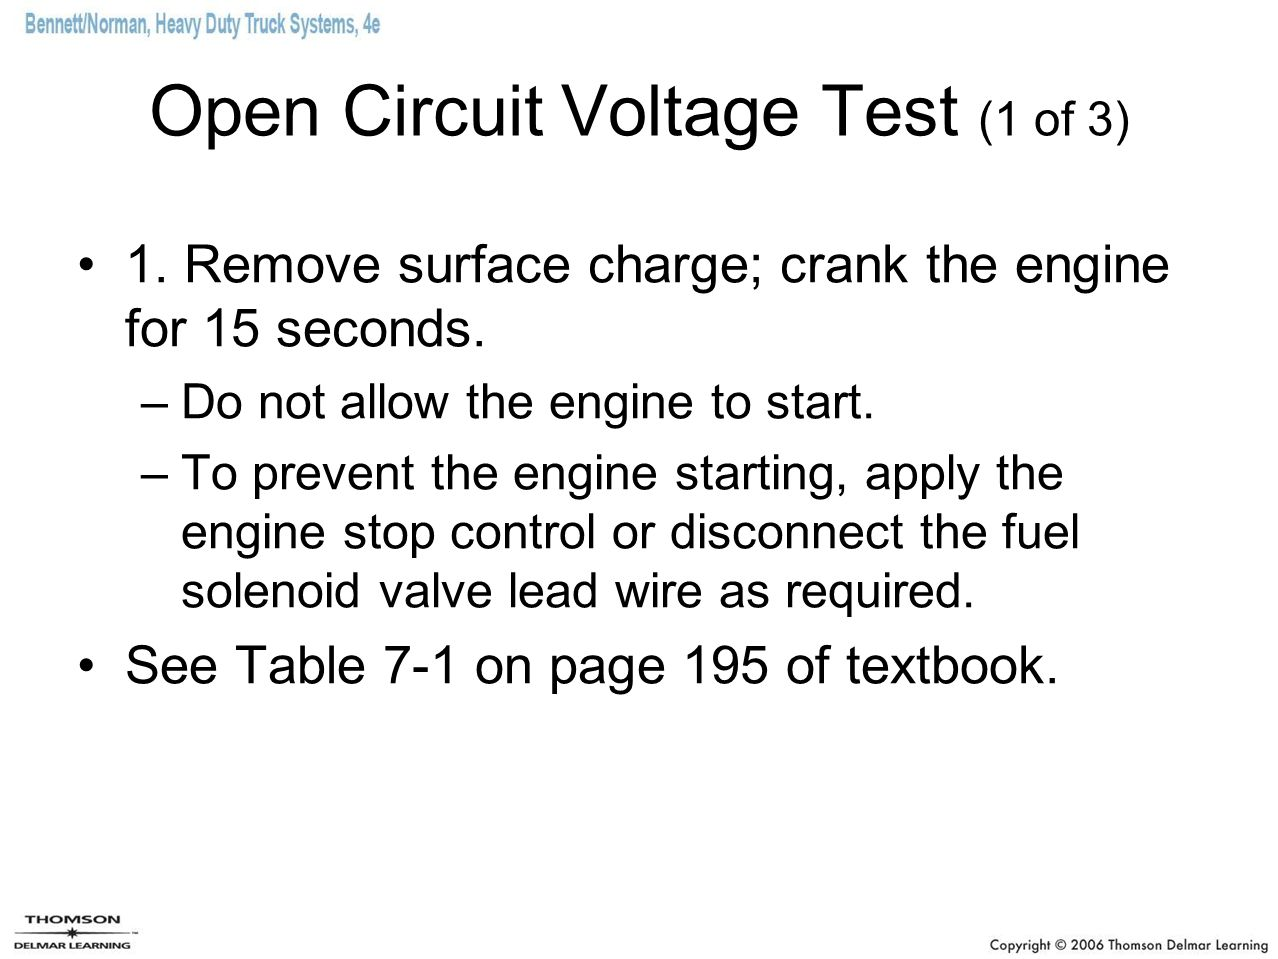 Open Circuit Voltage Test (1 of 3)